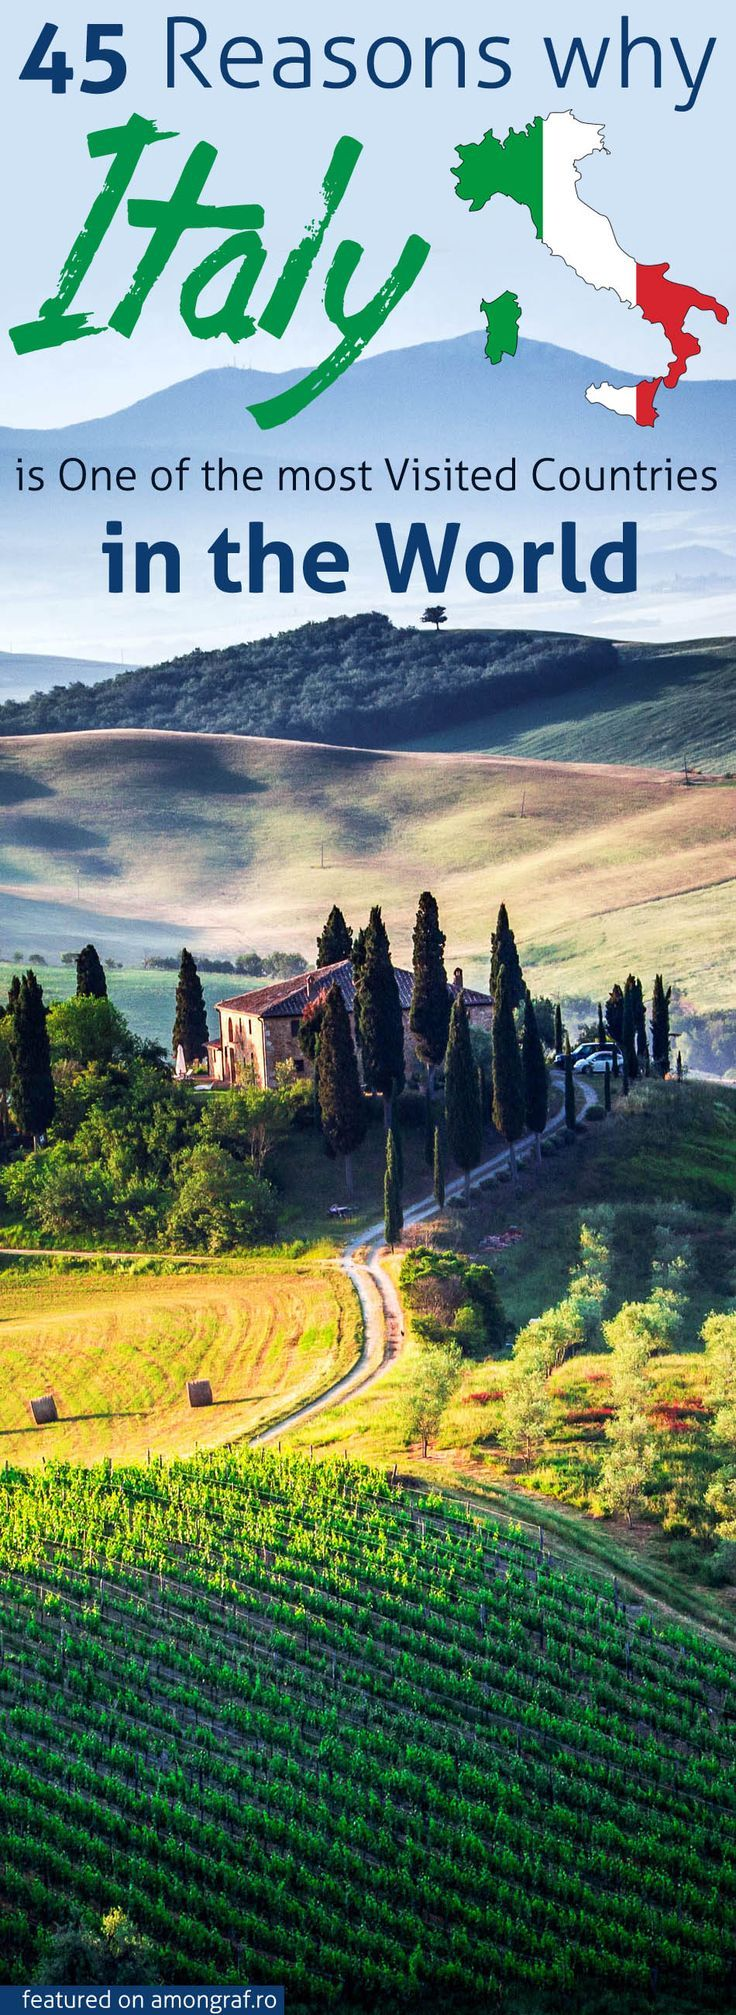 Thinking of what to bring home for family and friends? Check out Tour Italy Now's article about the best food souvenirs from Italy! 132 19 1 Tour Italy Now All Things Italian Donna collins You're amazing ♥